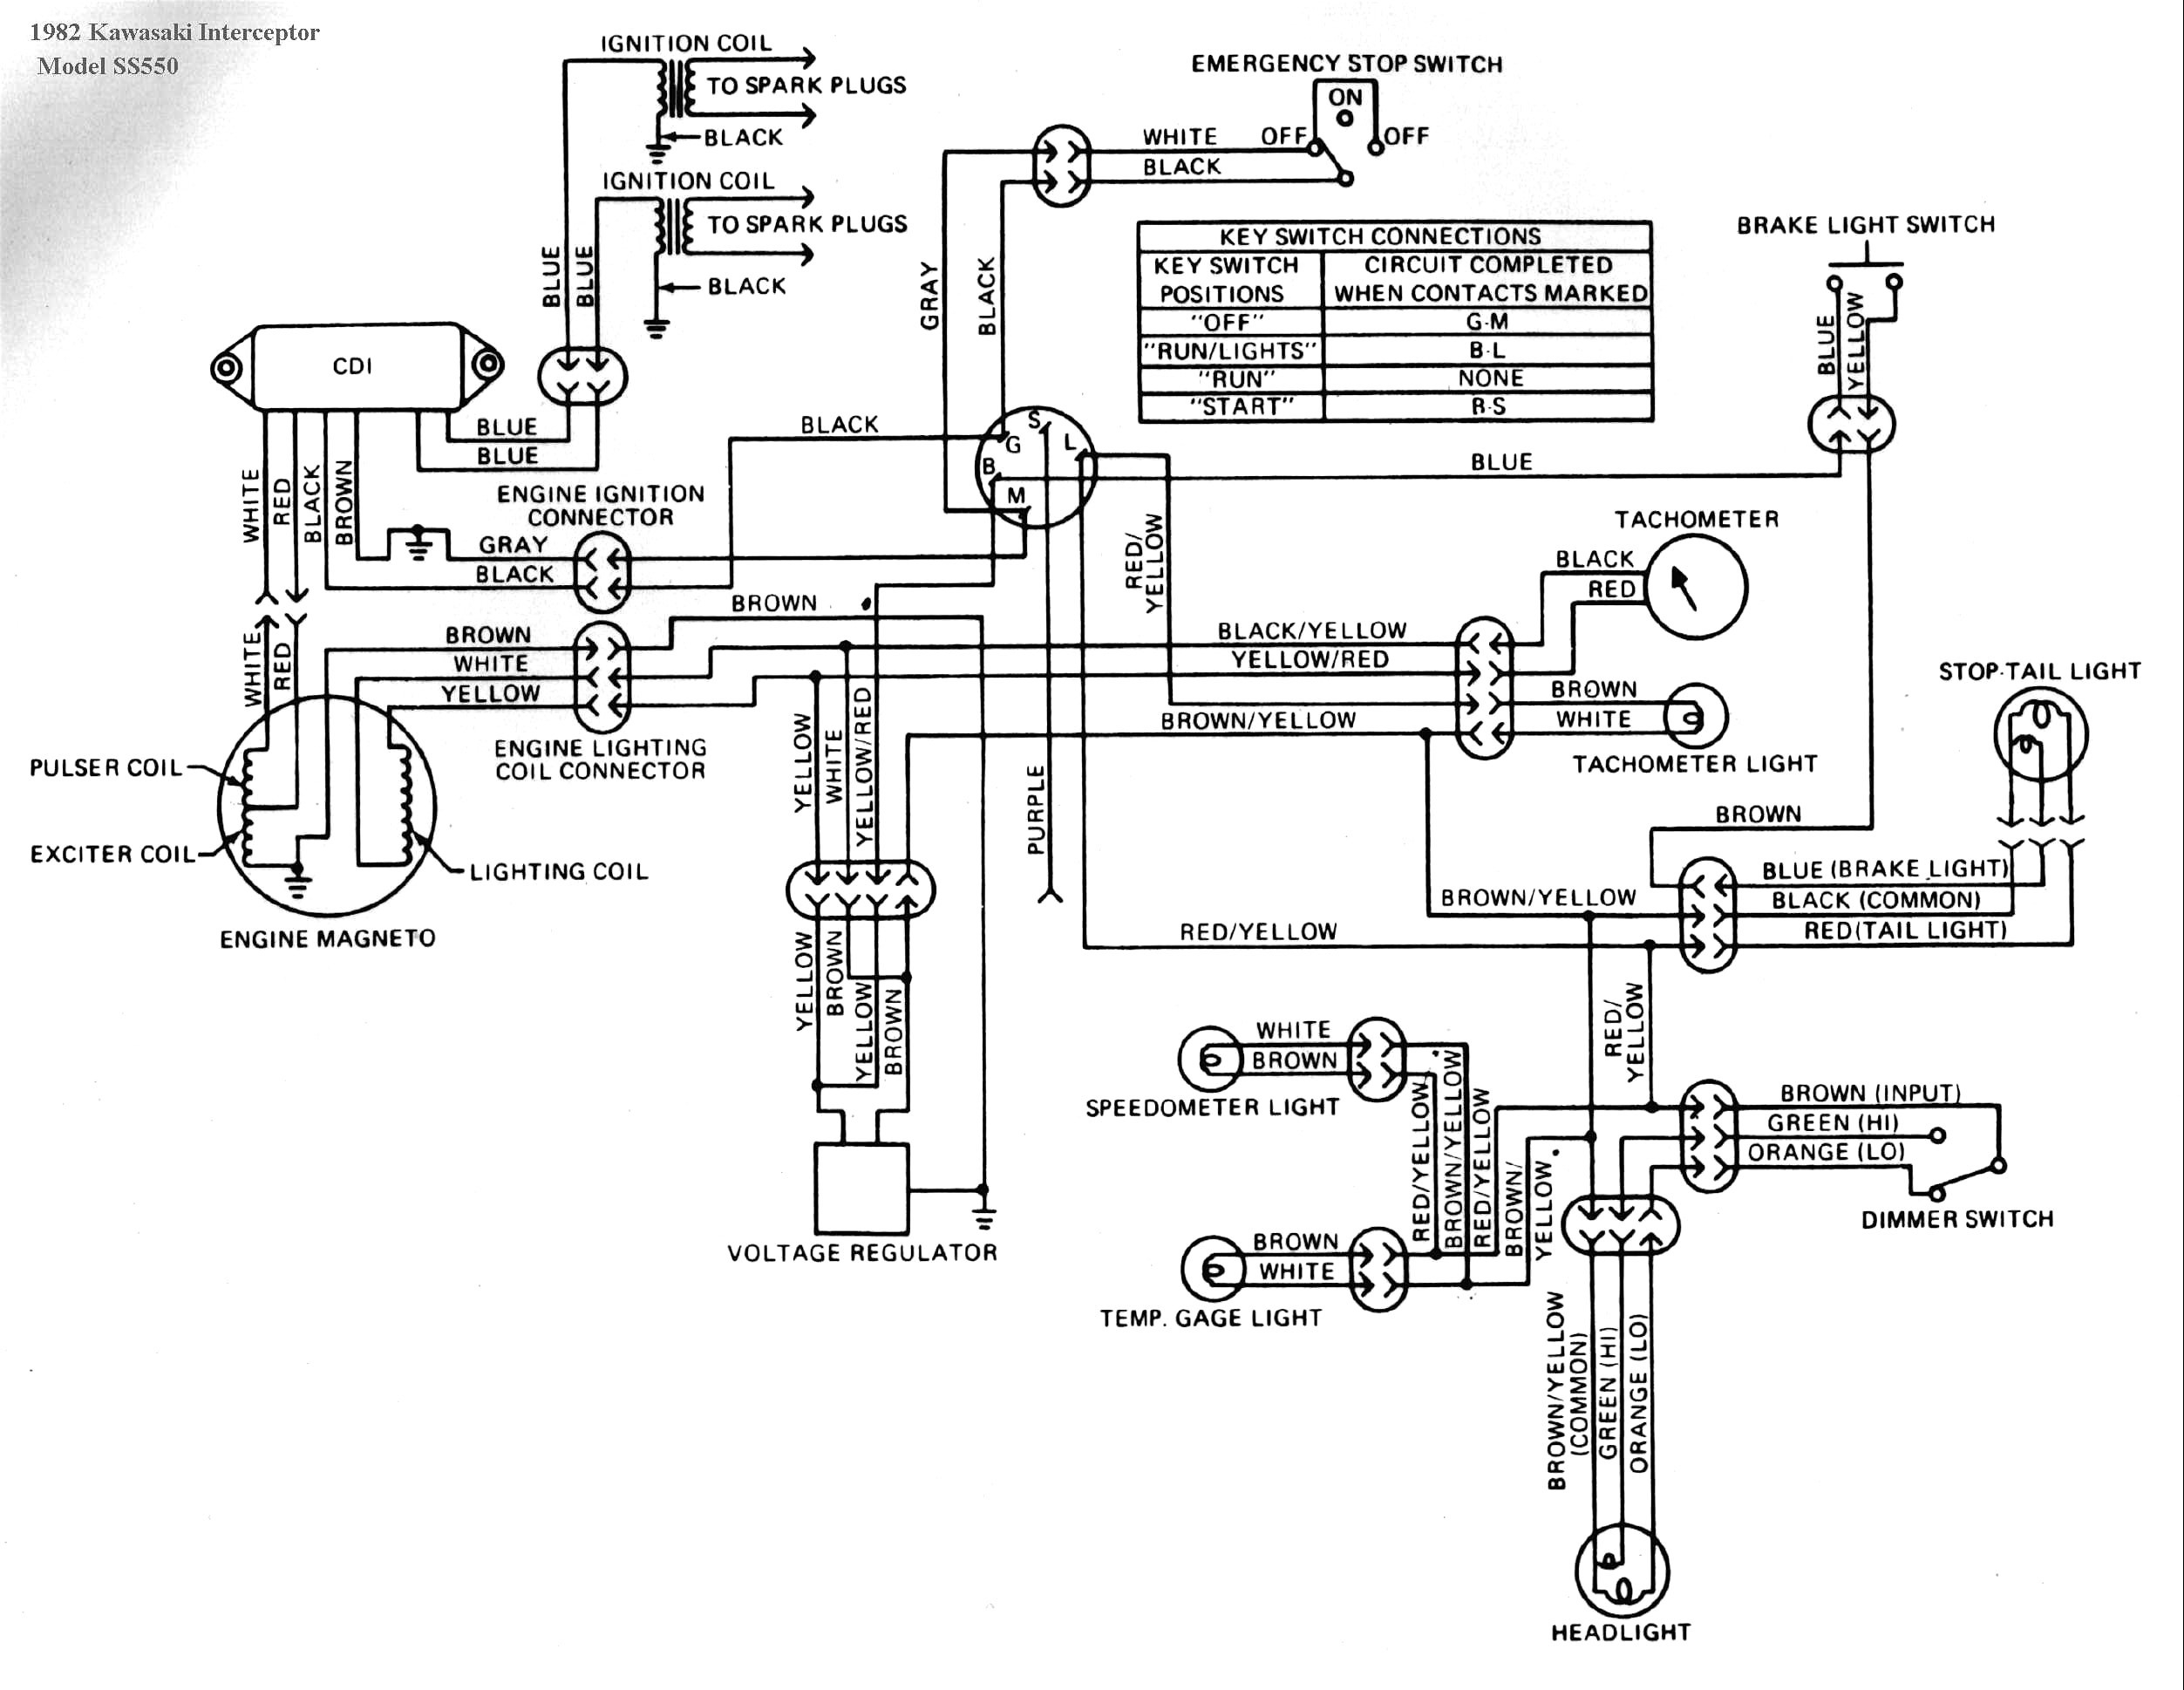 kawasaki ltd 550 wiring diagram wiring diagram img  kawasaki ltd 550 wiring diagram #7